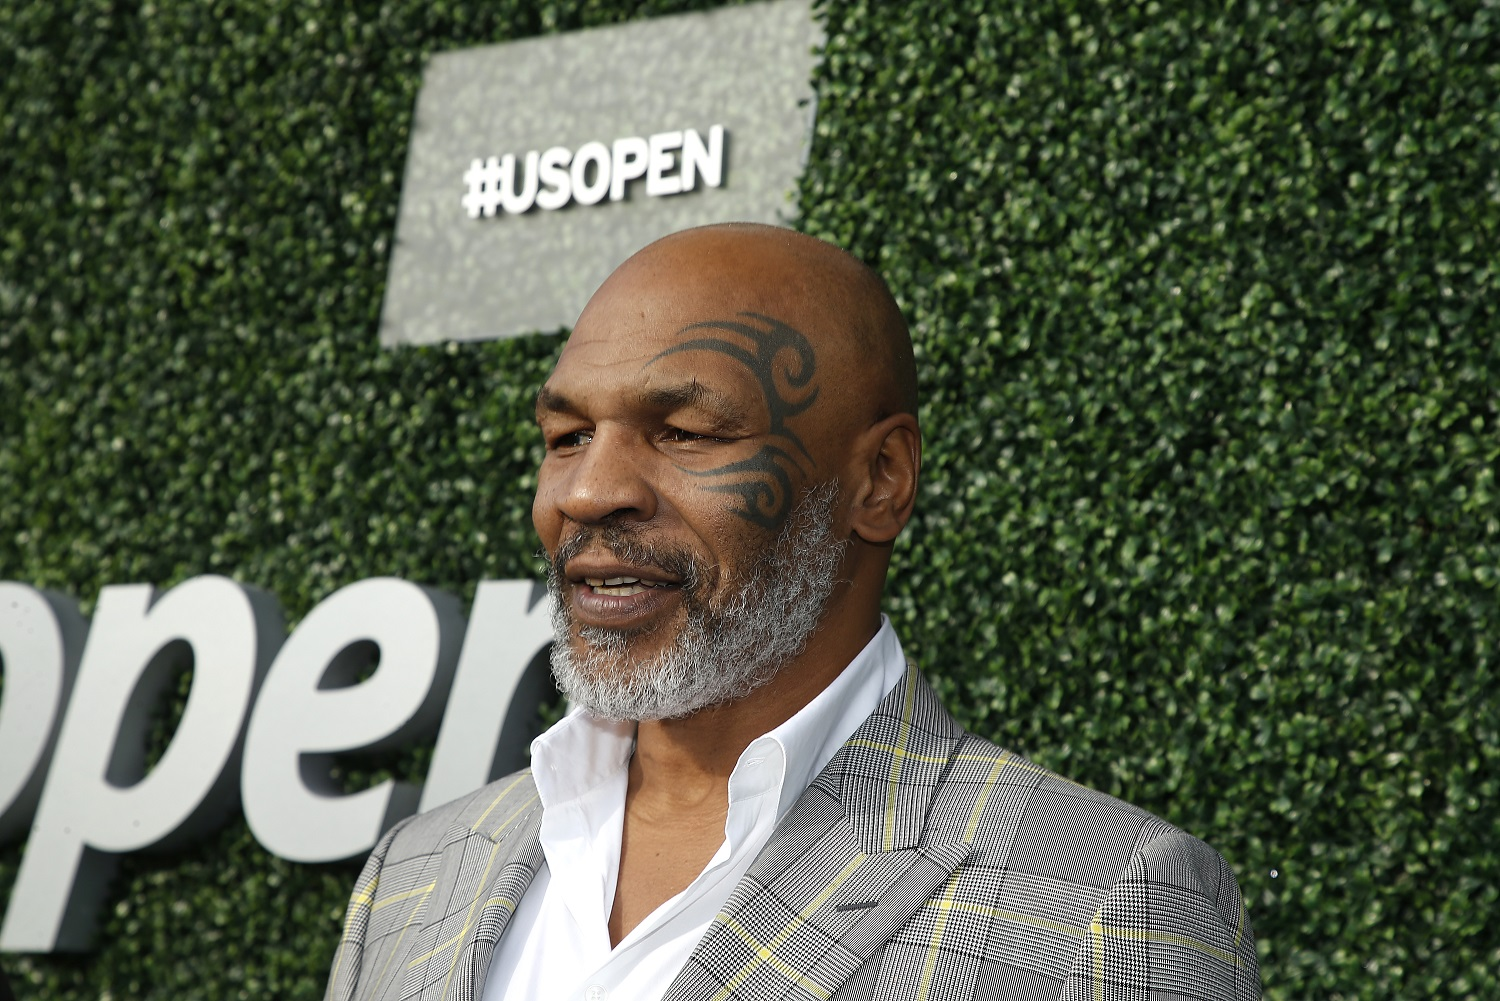 Mike Tyson Took on a 'Wild' New Diet While Training for His Fight With Roy Jones Jr.